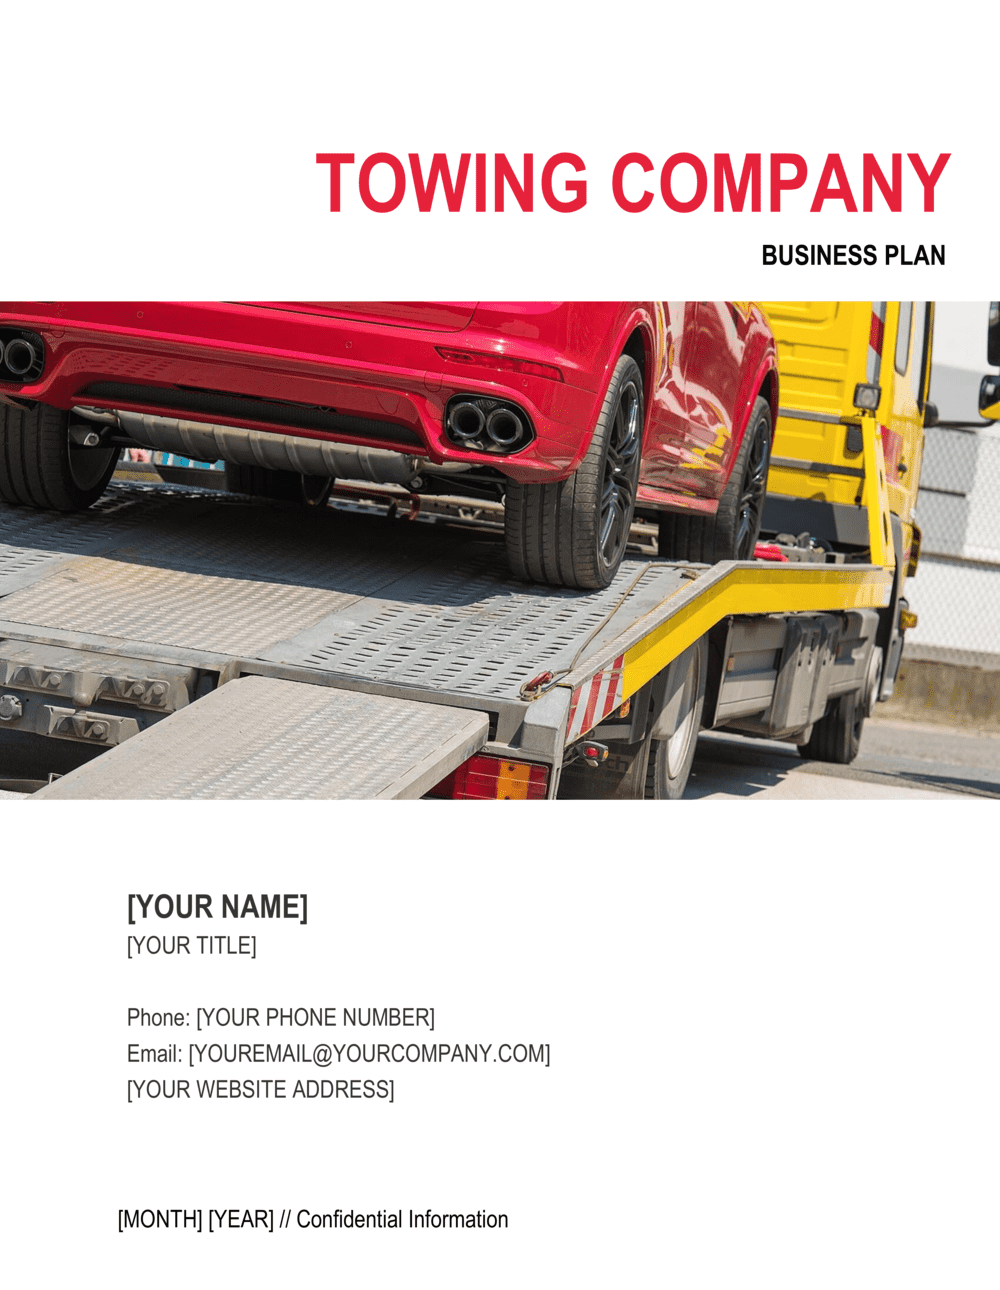 Business-in-a-Box's Towing Company Business Plan Template